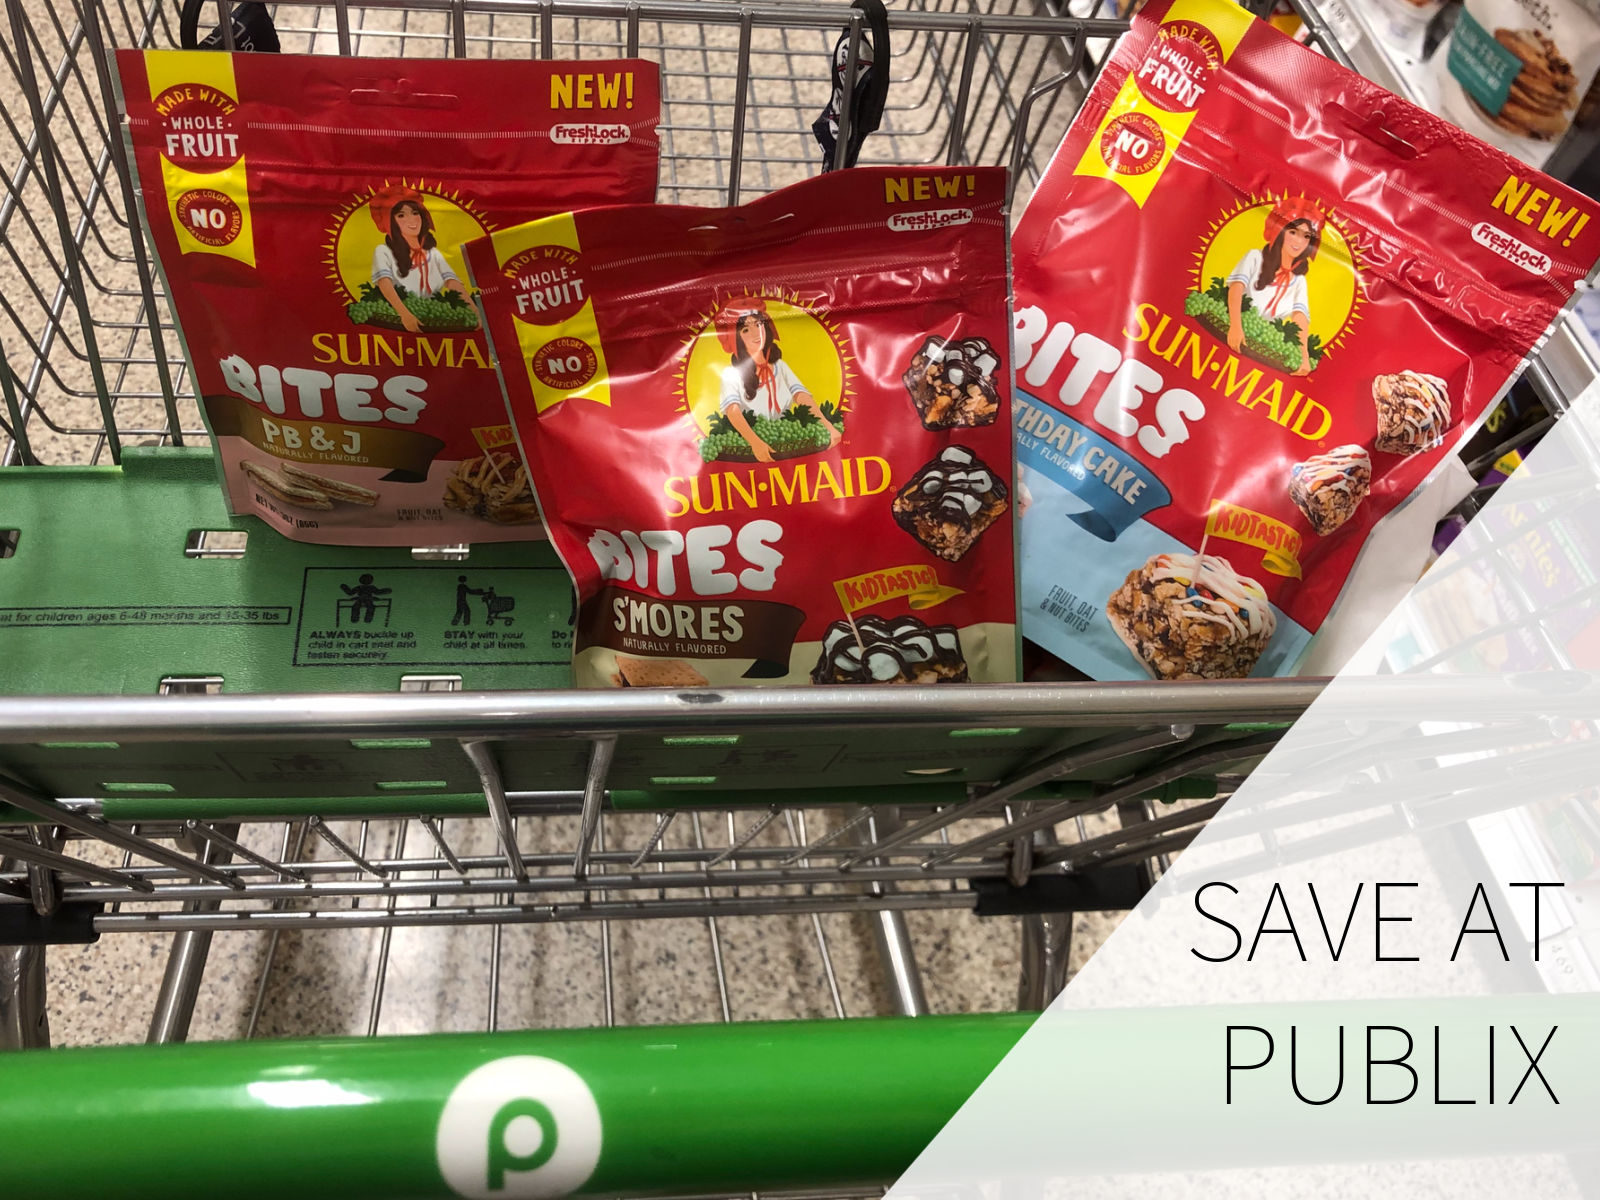 Pick Up Savings On Delicious New Sun-Maid Bites At Publix on I Heart Publix 1